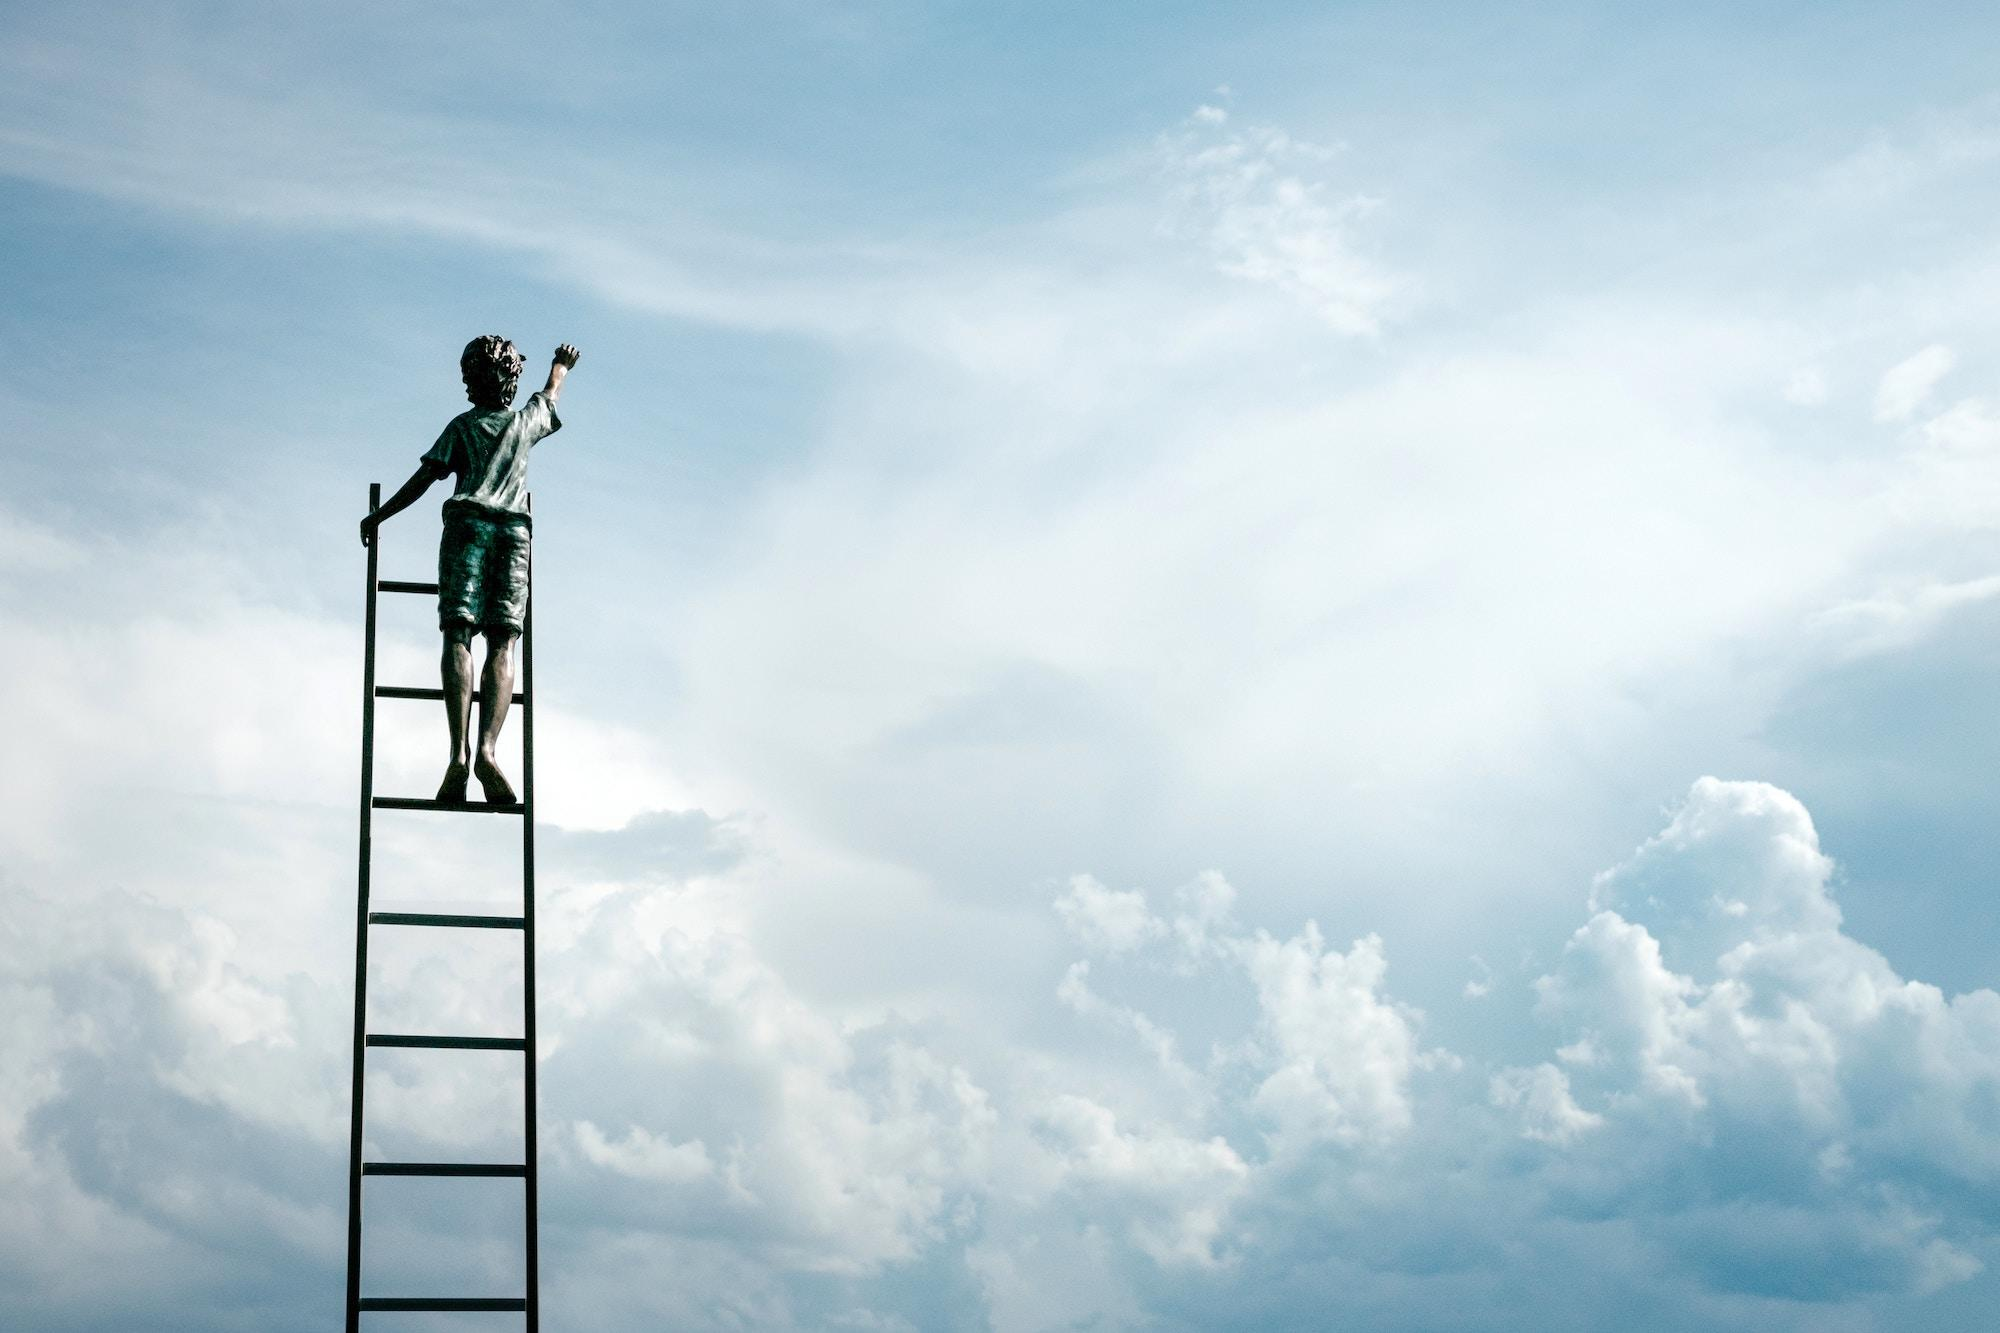 Boy dreamer on top of ladder as symbol of individual sucess